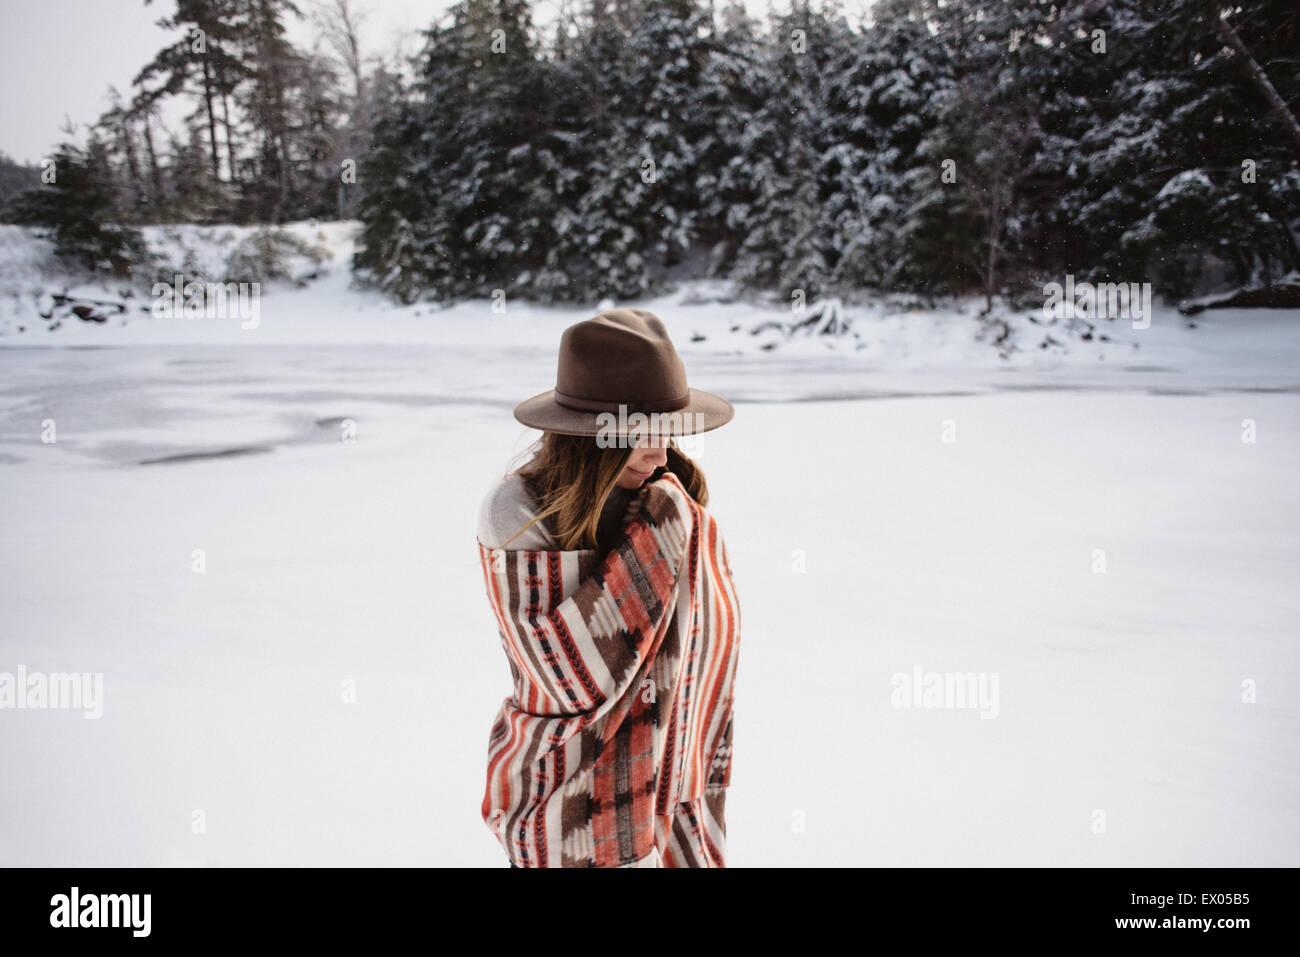 Portrait of woman wrapped in blanket in snow covered landscape, Omemee Ontario Canada - Stock Image